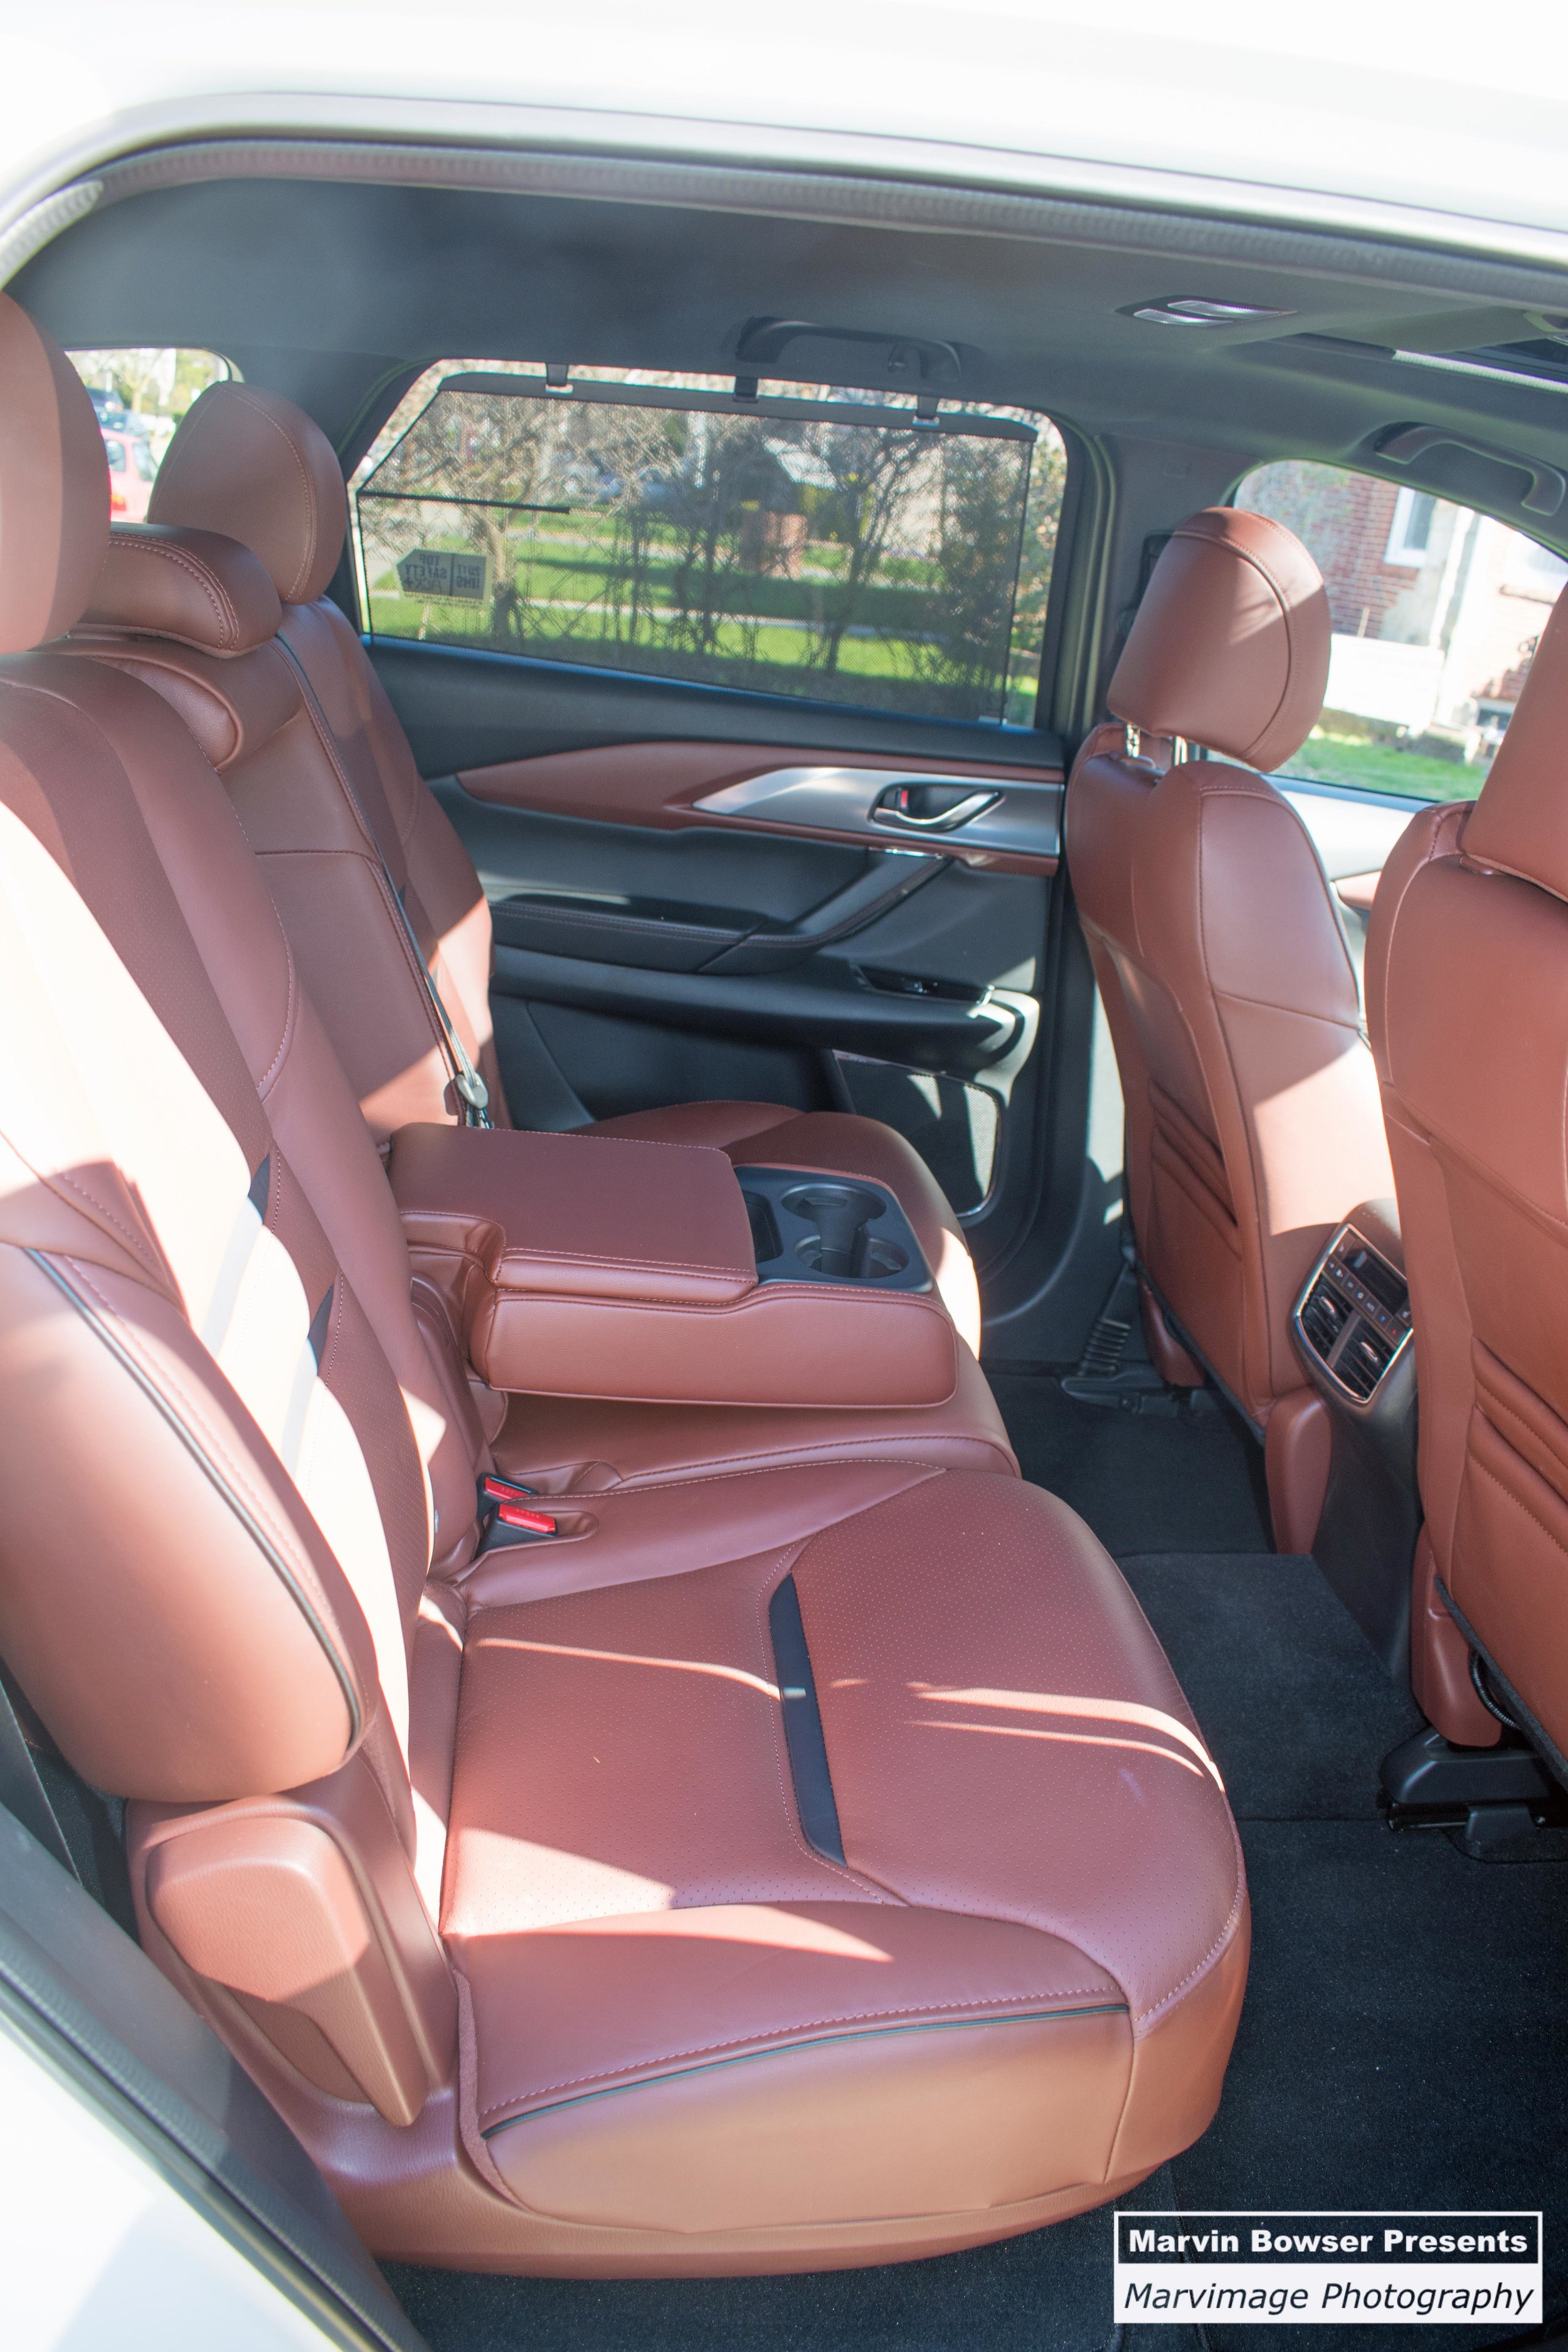 CX-9 Middle Seats, heated, recline and slide forward/aft